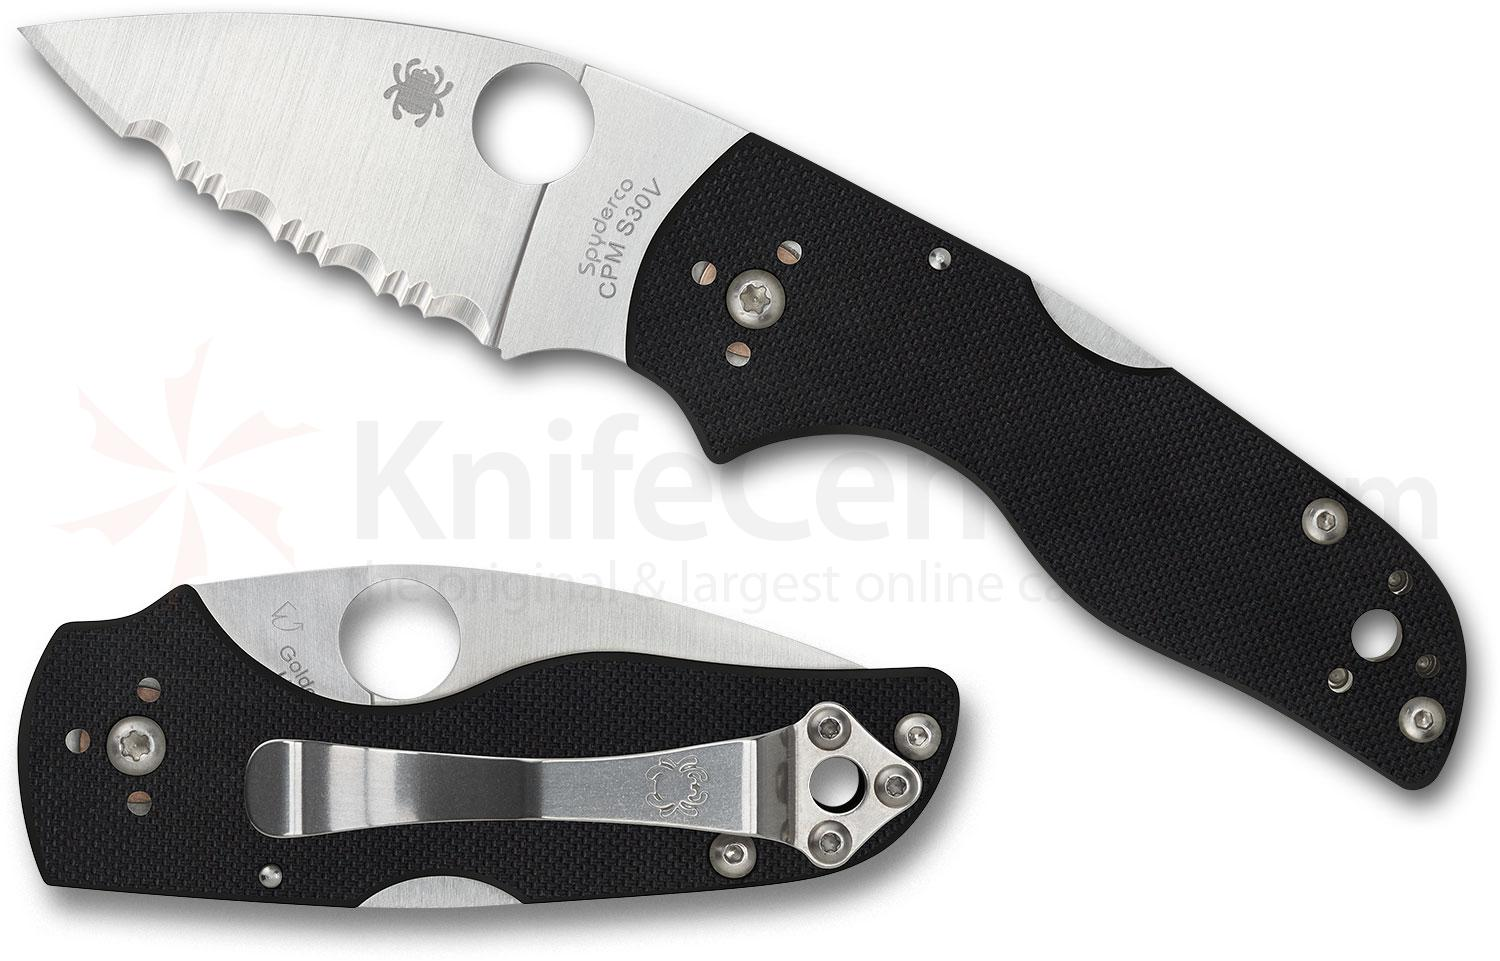 Spyderco Lil' Native Lockback Folding Knife 2.47 inch CPM-S30V Satin Serrated Blade, Black G10 Handles